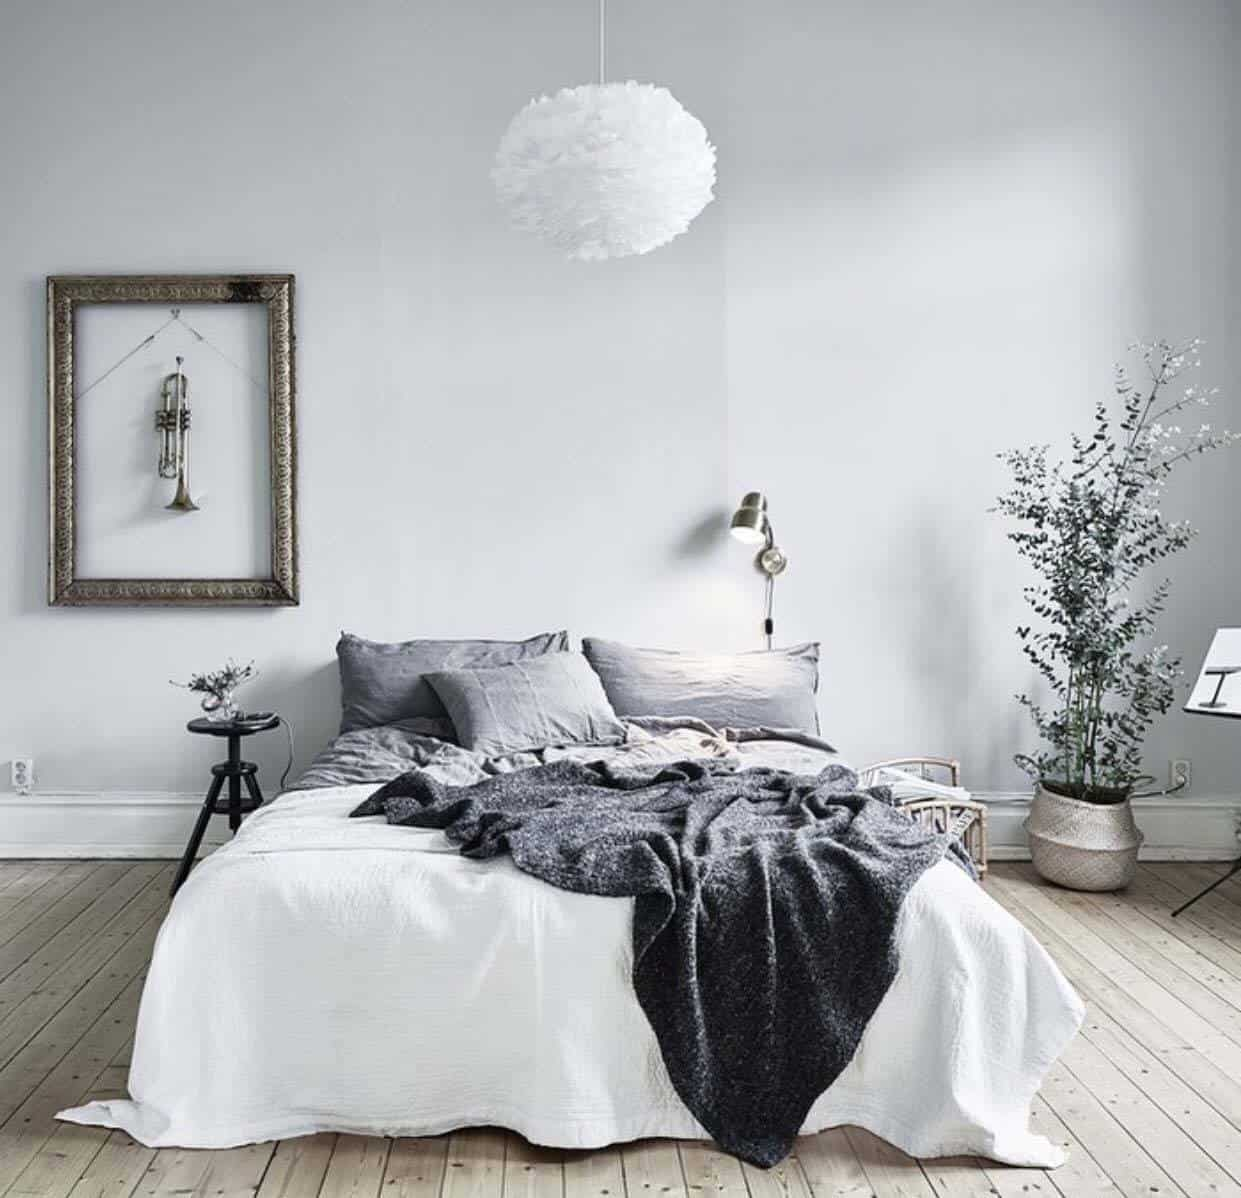 25 Bedroom Design Ideas For Your Home: 45 Scandinavian Bedroom Ideas That Are Modern And Stylish